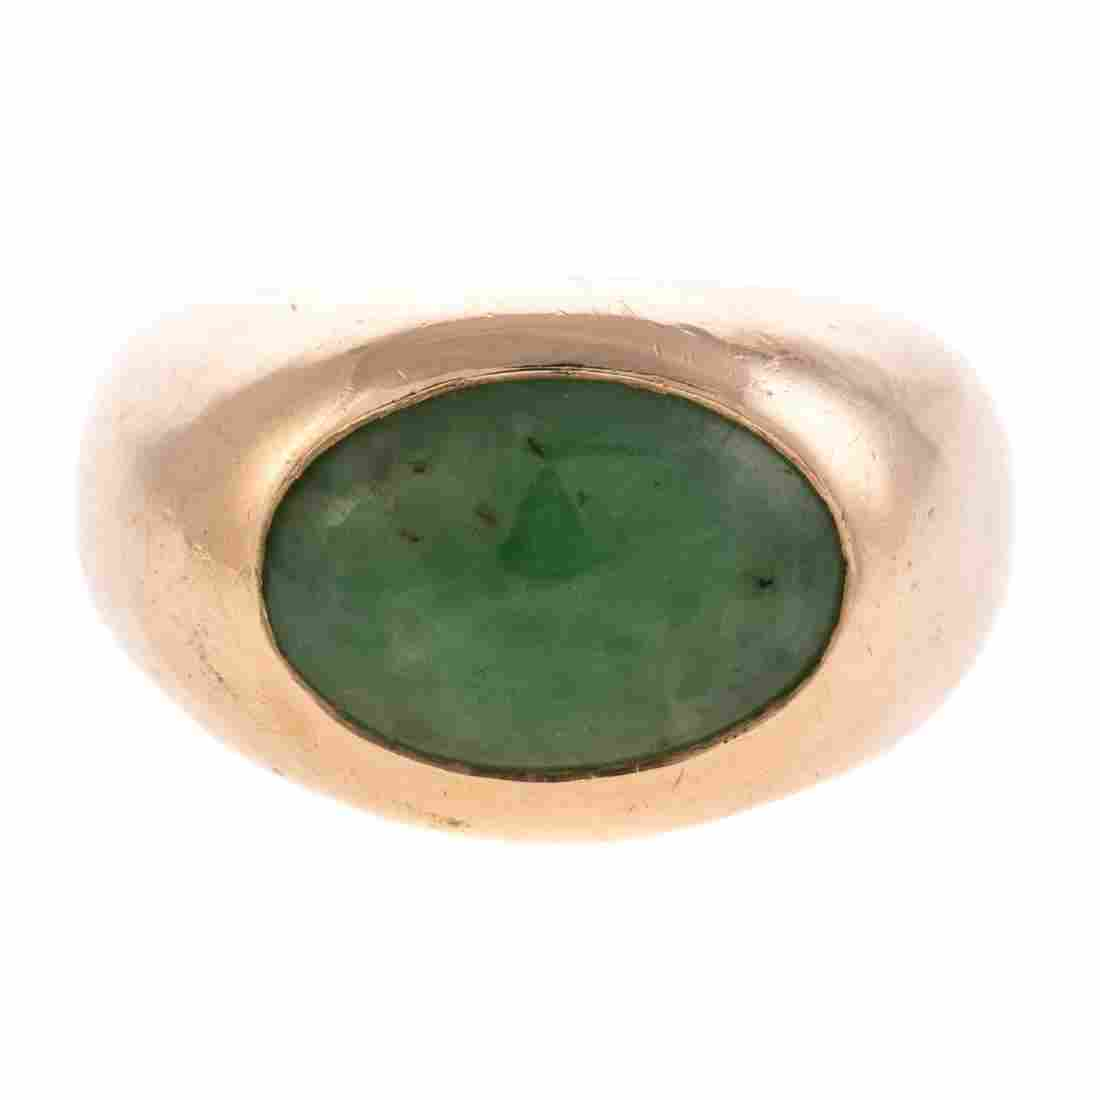 A Gent's GIA Natural Jade Ring in 14K Gold